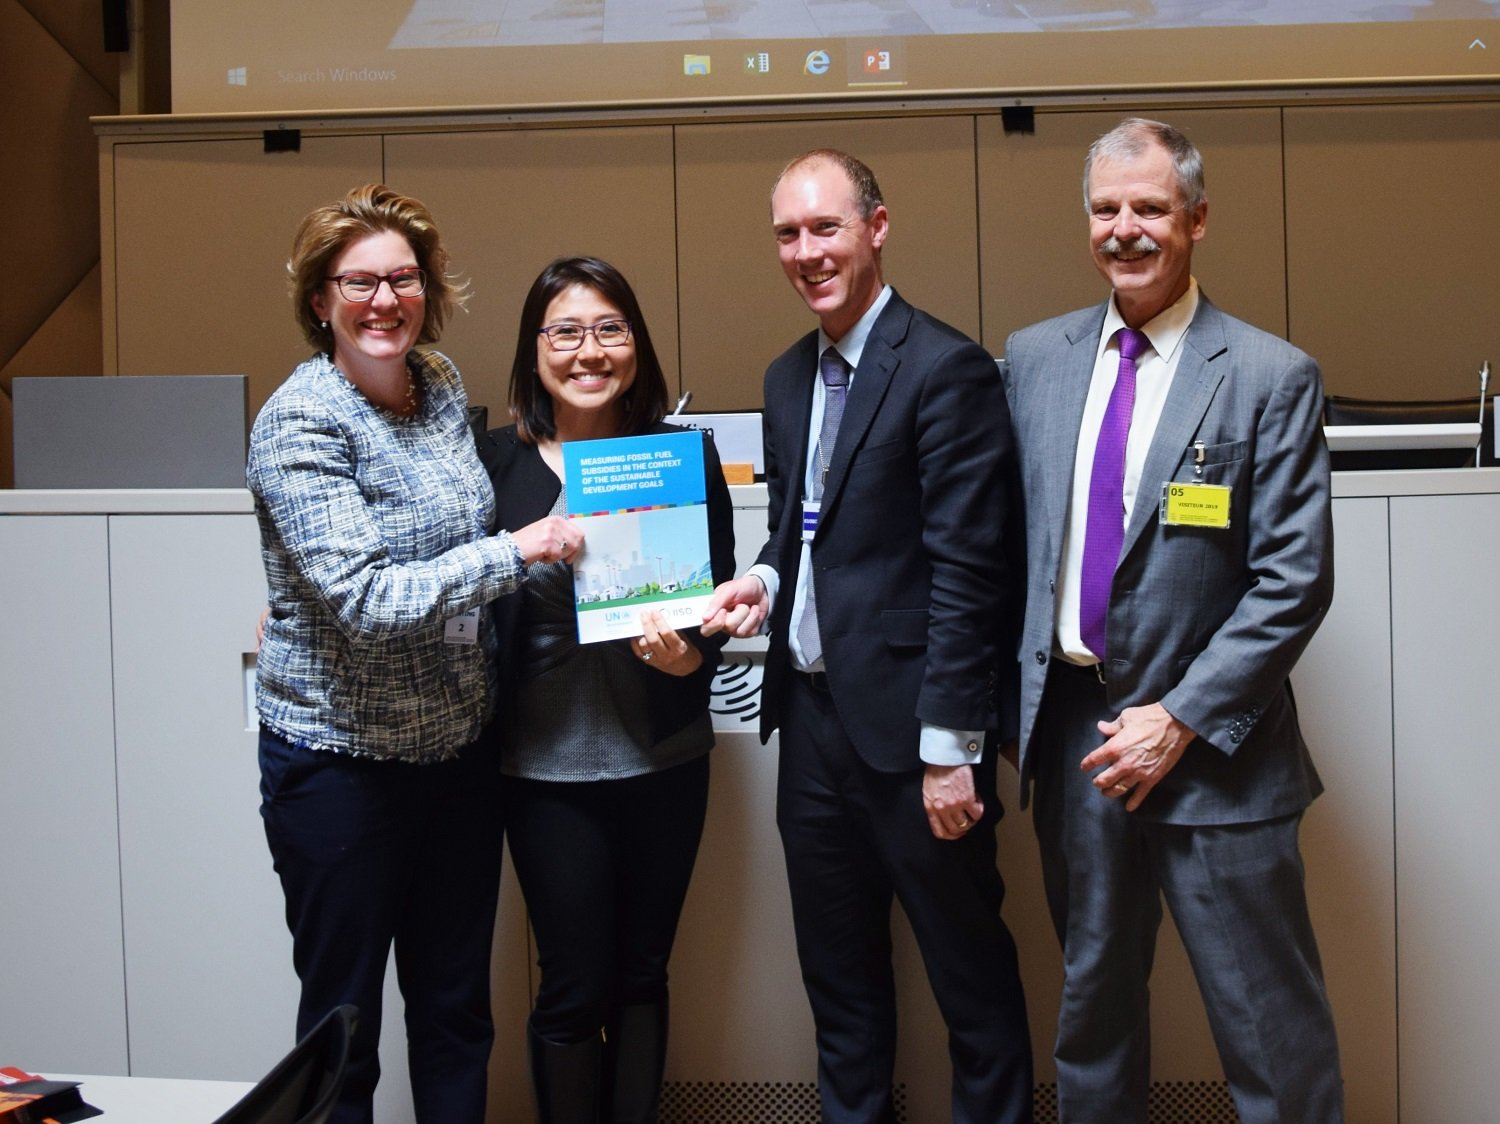 Laura Merrill (GSI), Rachel Bae (OECD), Michael Webb, (New Zealand), Ron Steenblik (GSI).